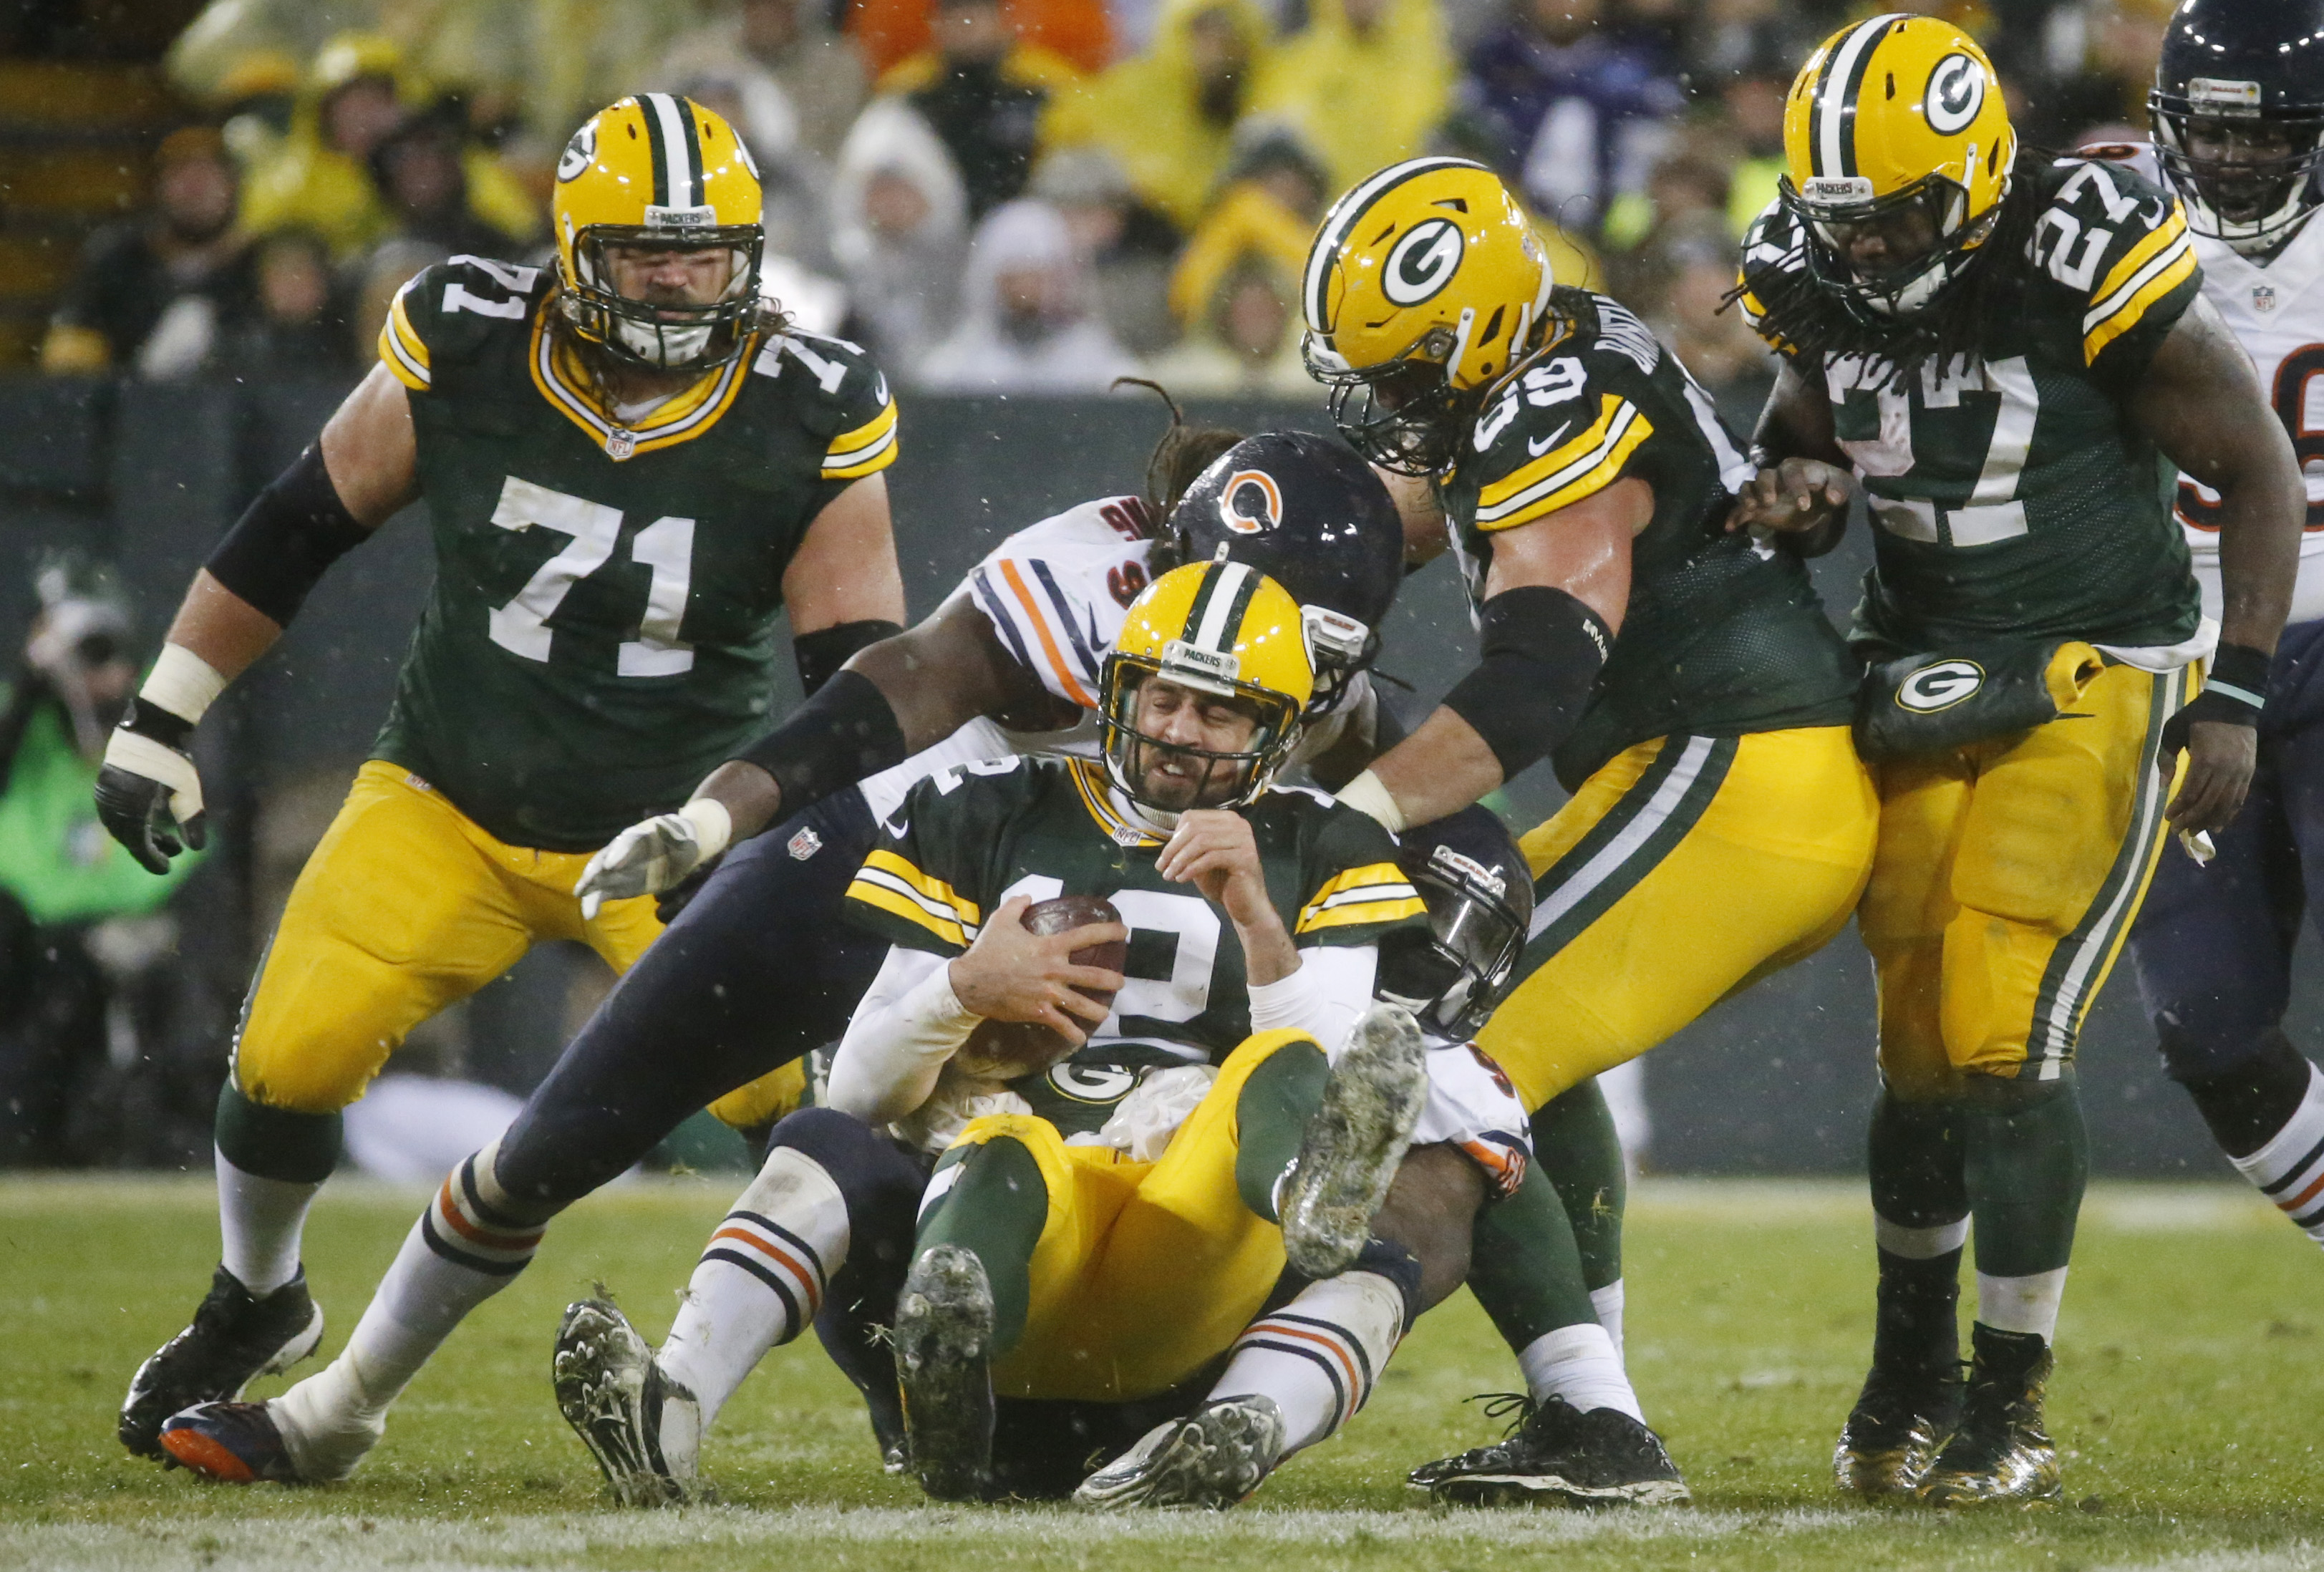 Green Bay Packers' Aaron Rodgers grimaces as he is tackled after recovering a fumble during the second half of an NFL football game against the Chicago Bears Thursday, Nov. 26, 2015, in Green Bay, Wis. (AP Photo/Mike Roemer)